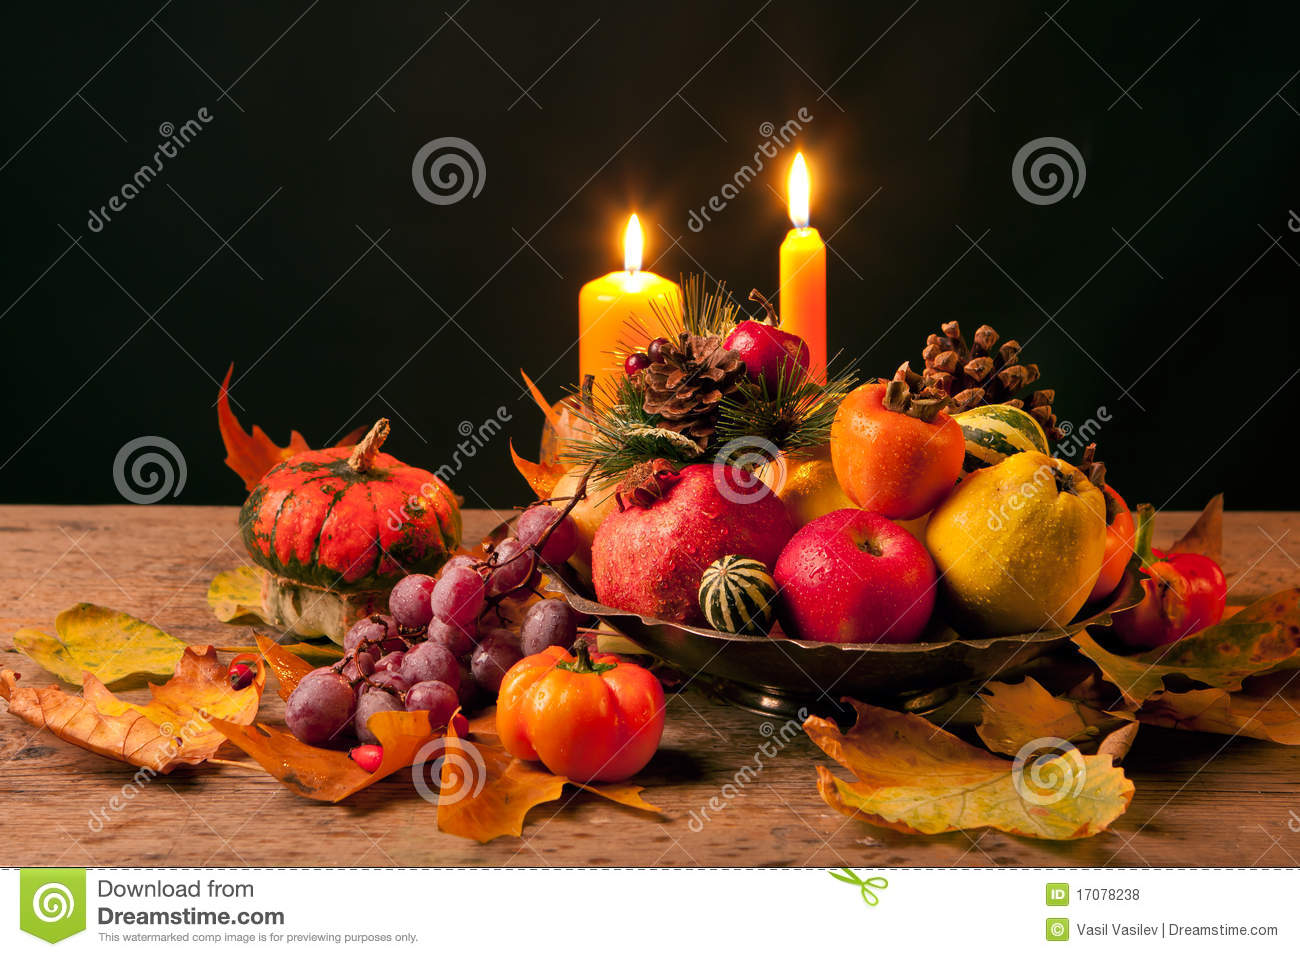 Fall Give Thanks Wallpaper Thanksgiving Still Life Stock Photo Image Of Candle